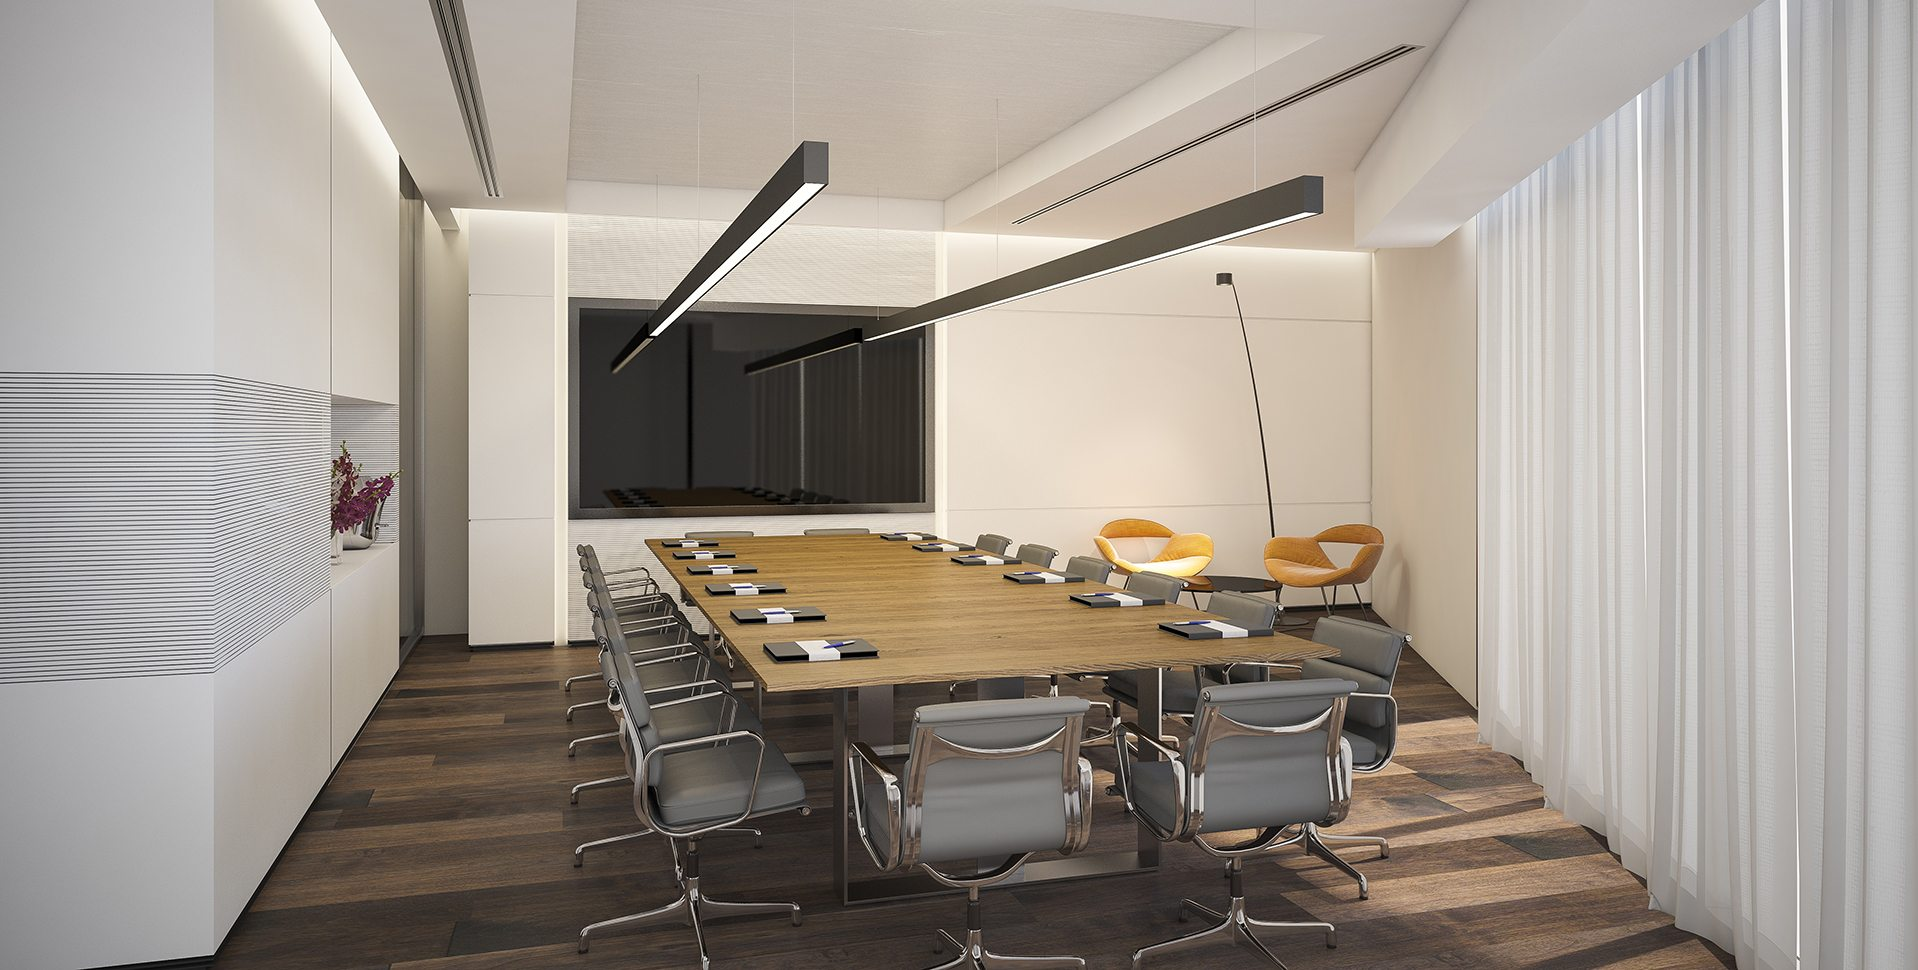 Architectural Visualization: BDSK Meeting room by Dunsky Architects